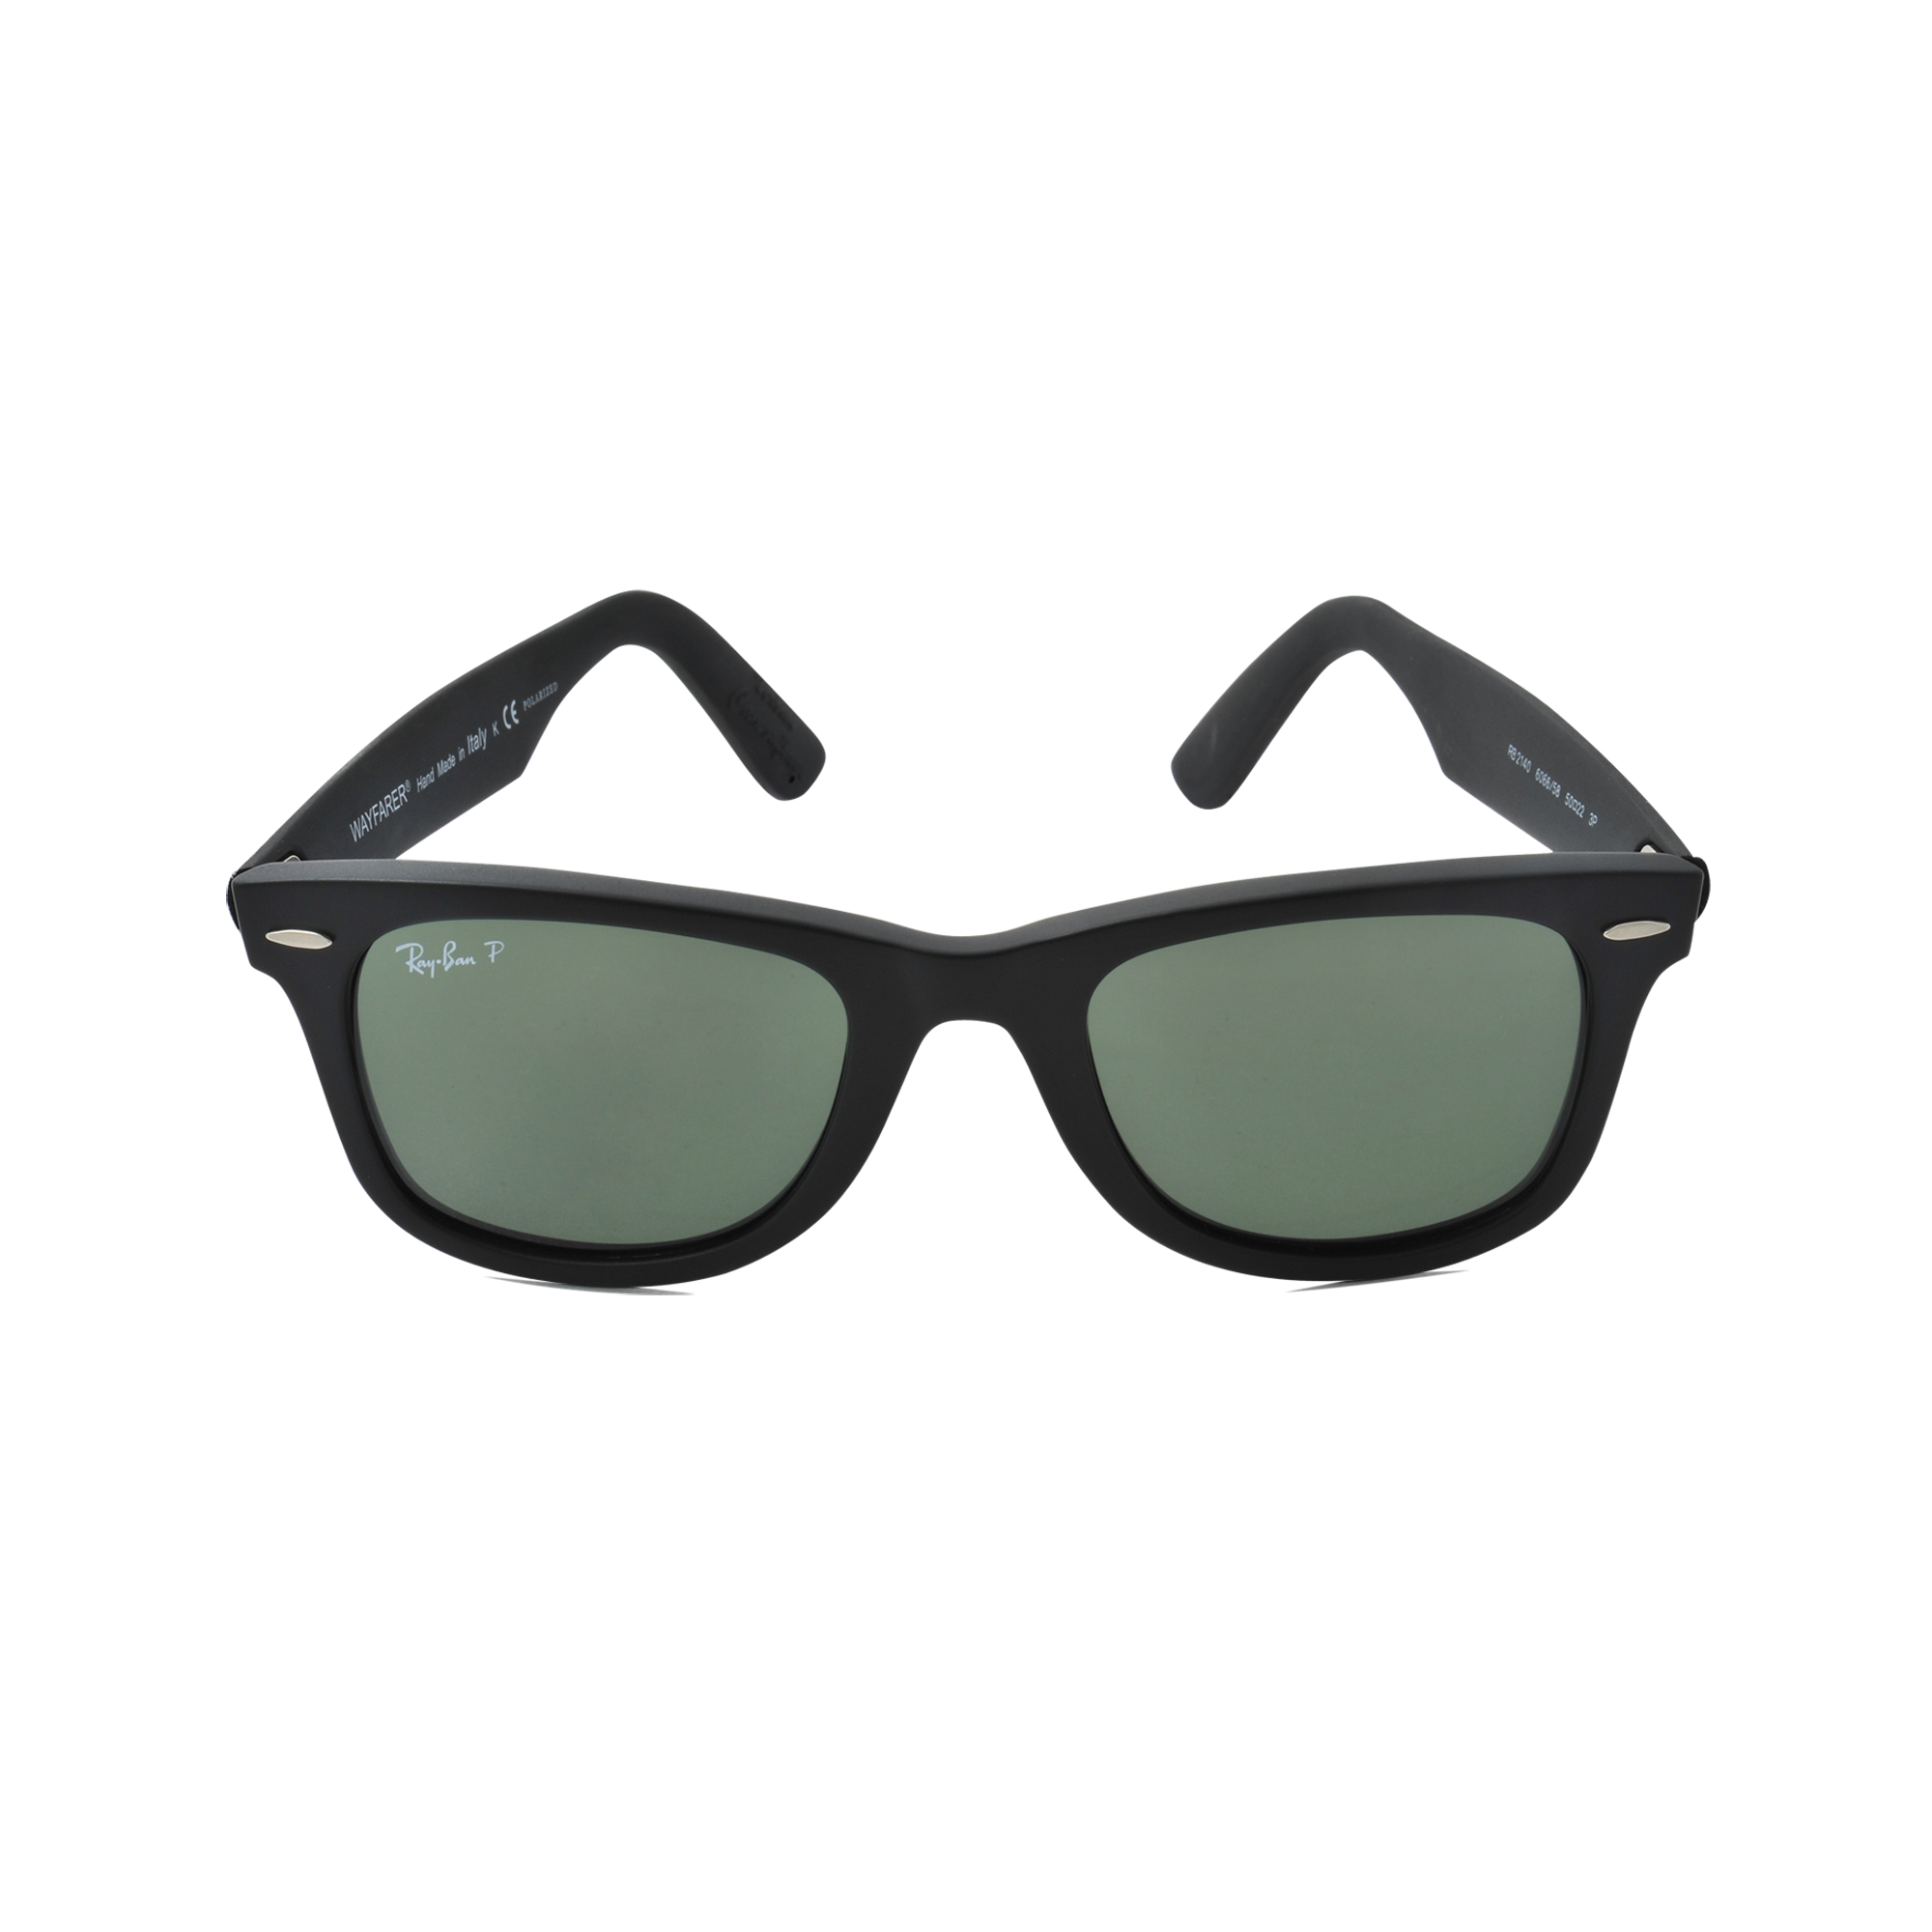 Lenscrafters Chanel Sunglasses